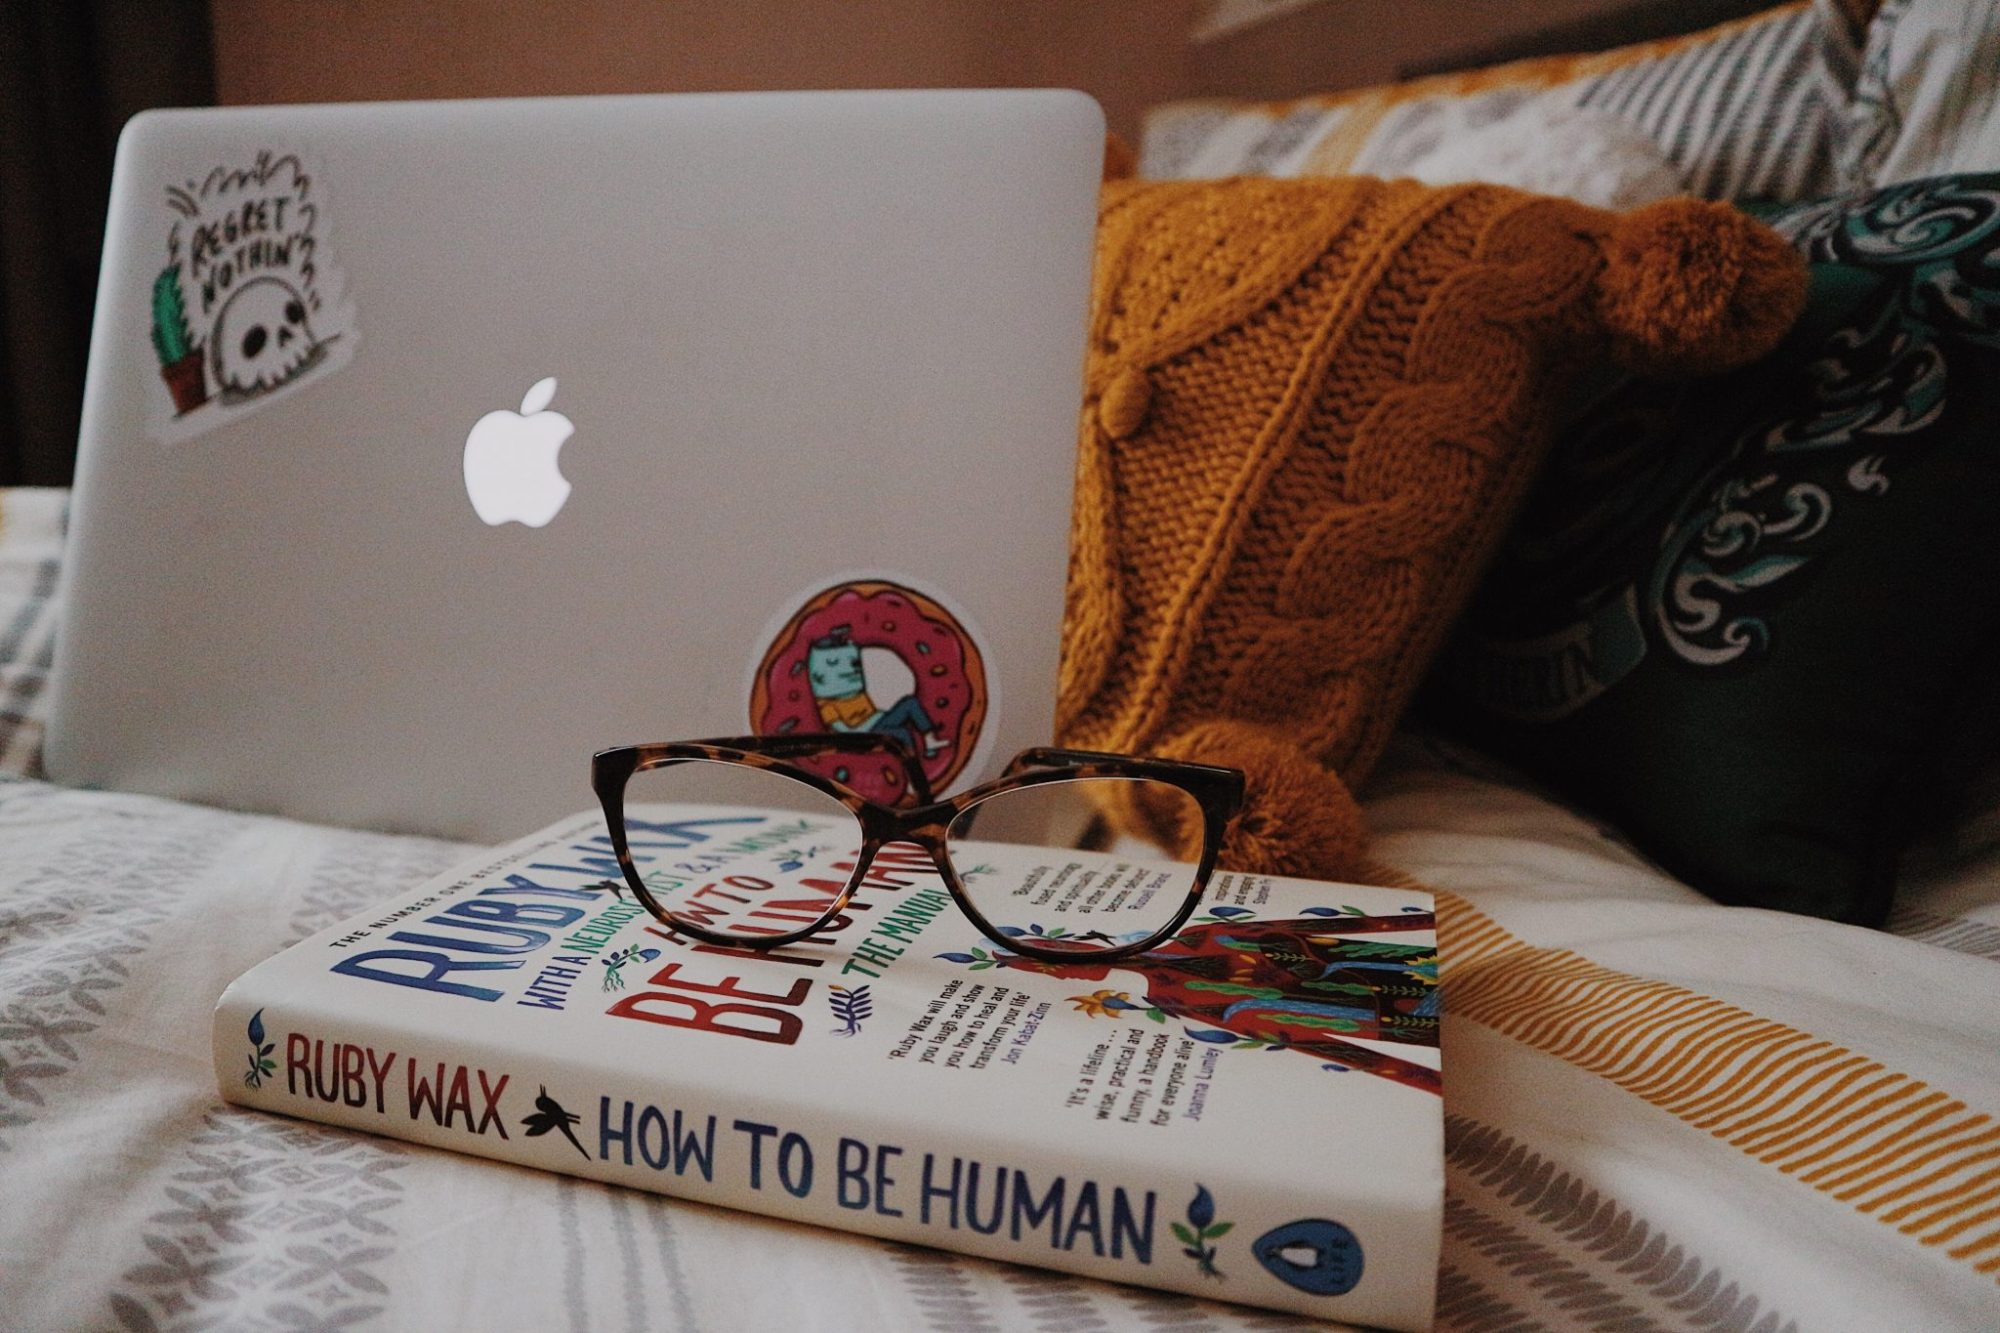 Macbook Pro | How To Be Human Book | Glasses